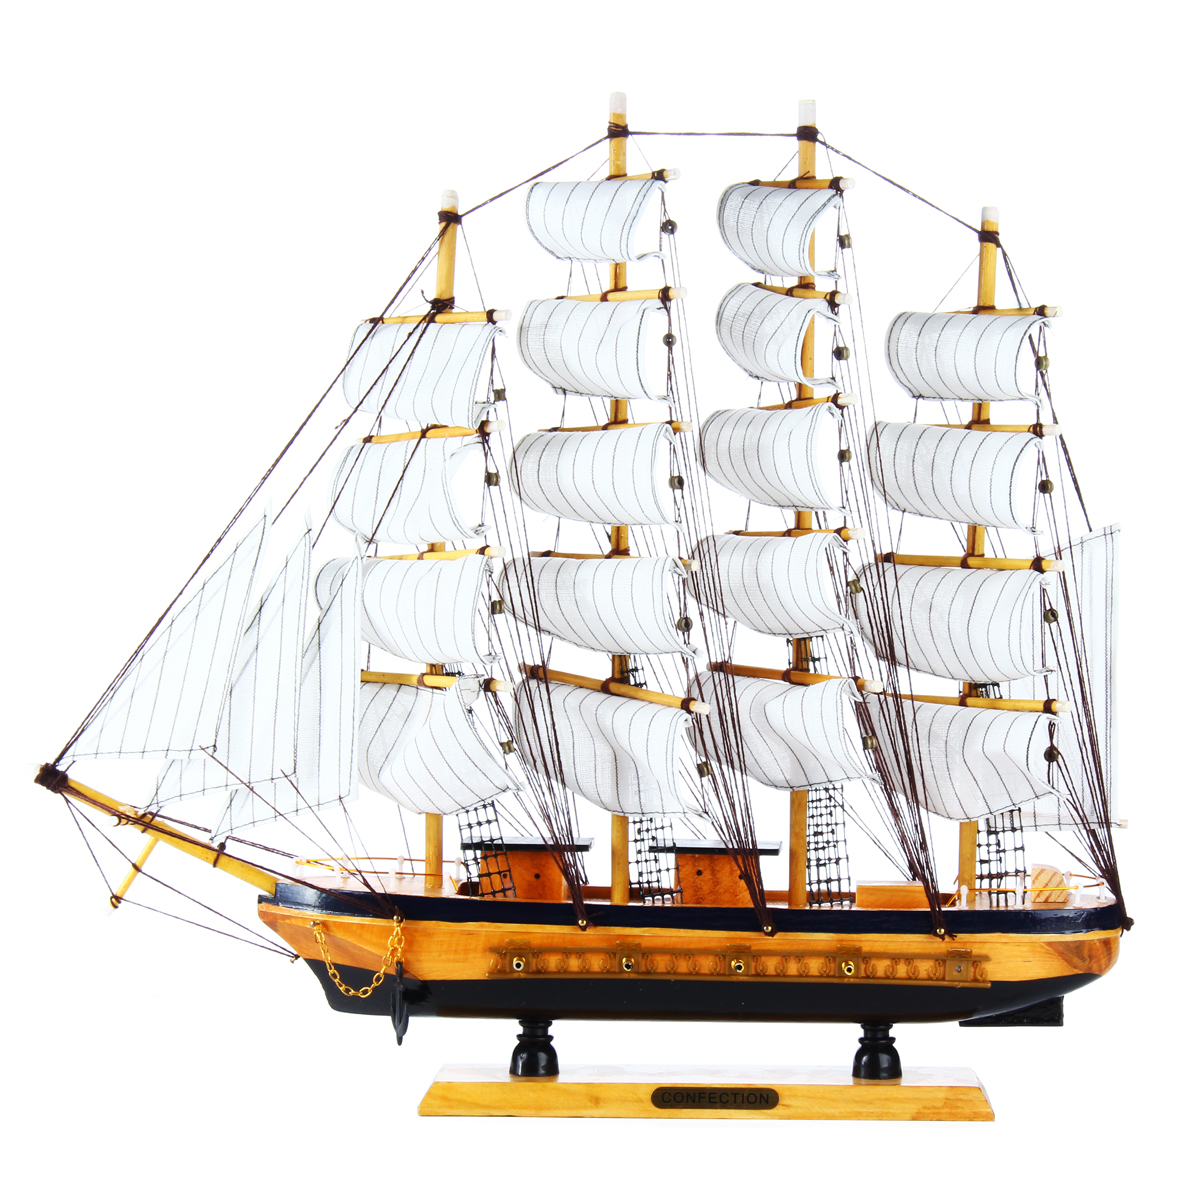 20 Ship Sailing Boat Sailboat Model Assembly Model DIY Kits Wooden Scale Boat Friend Gift Toy Plain Sailing Home Decor